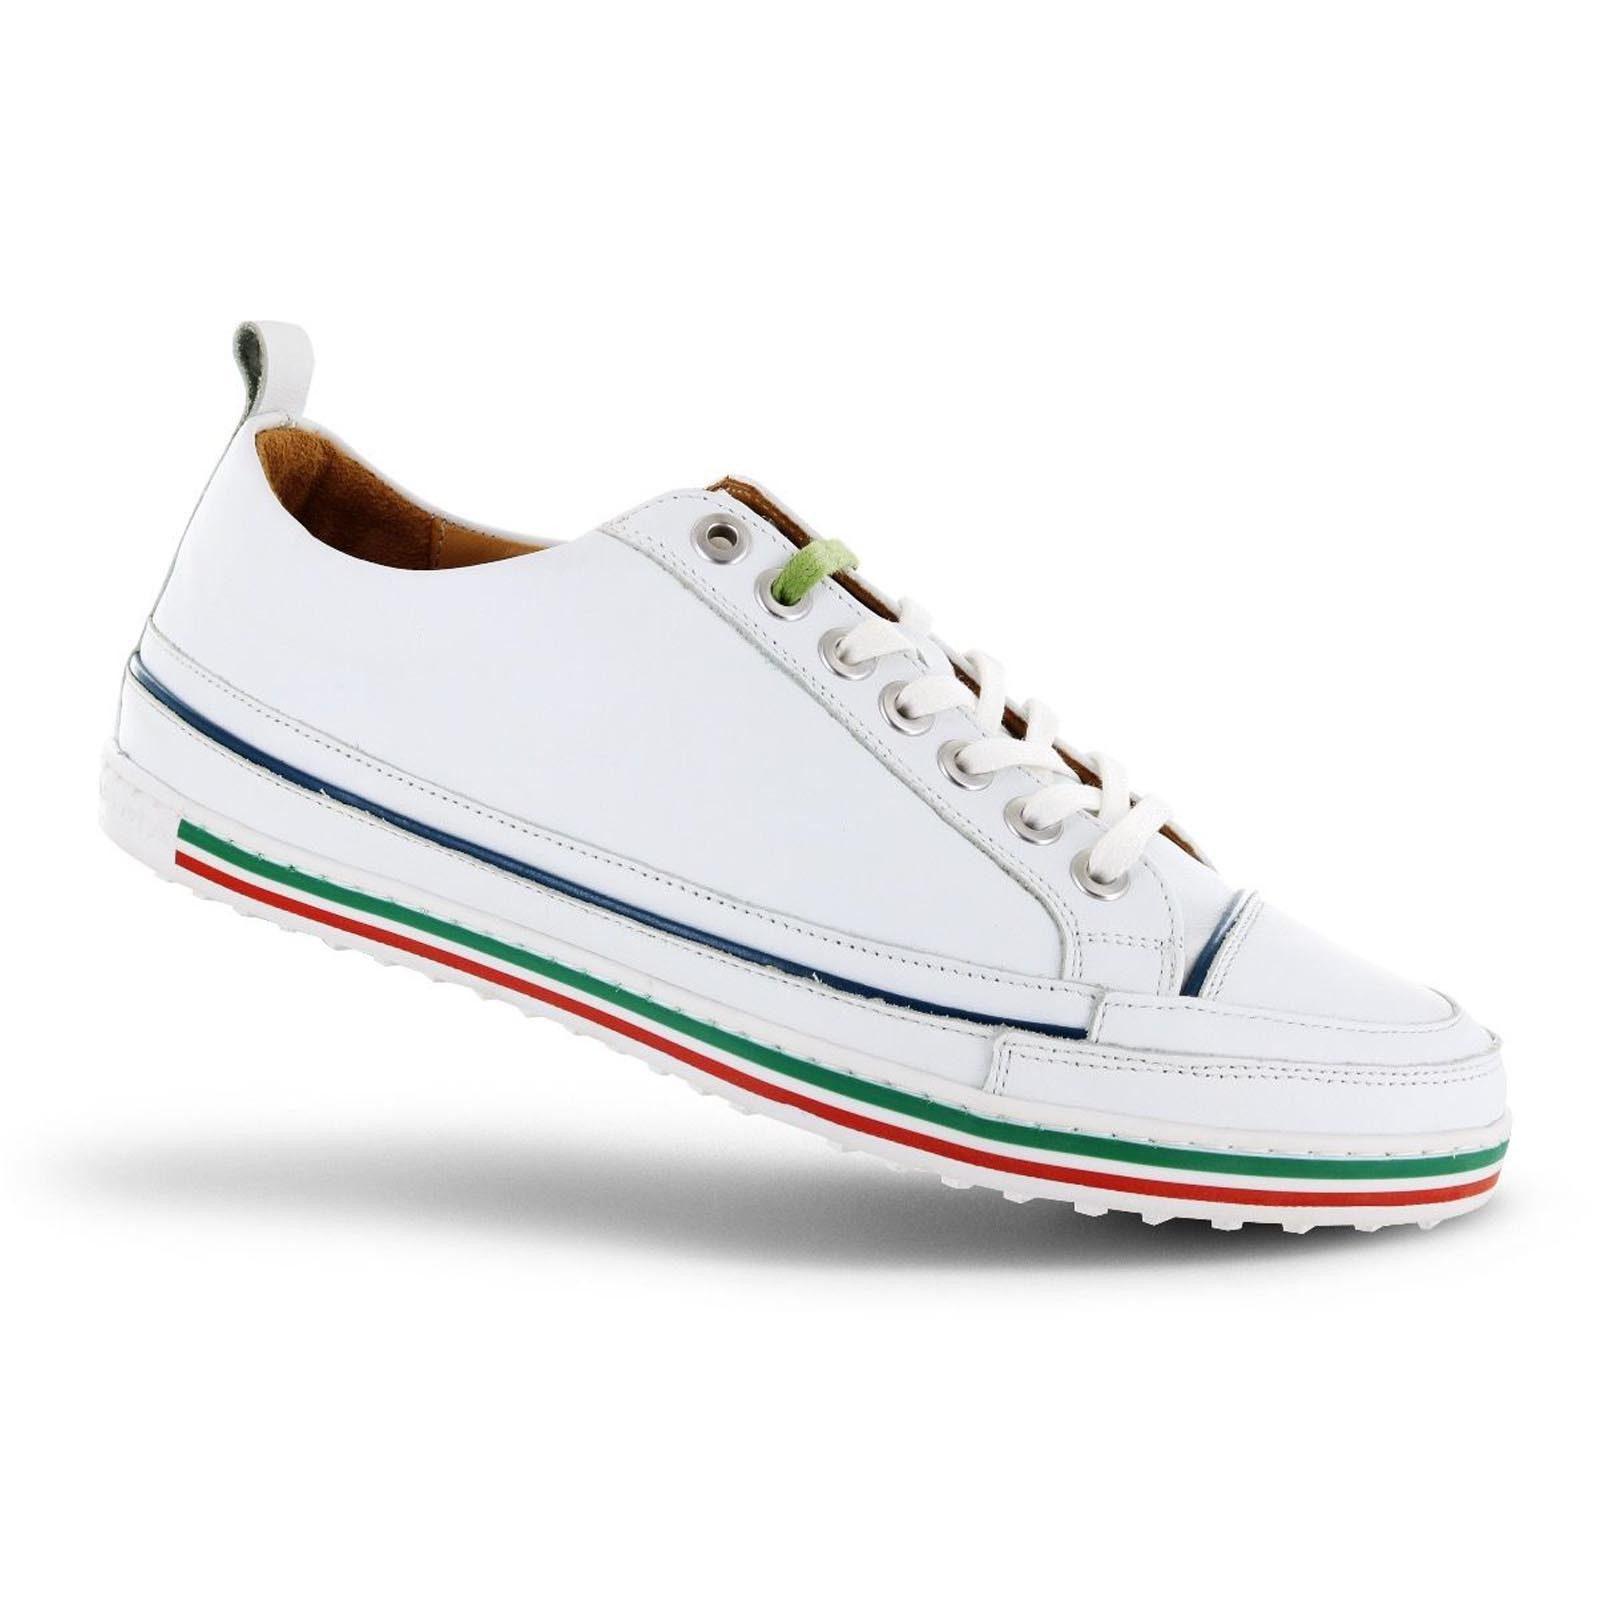 Duca del Cosma Monterosso SL Golf Shoes